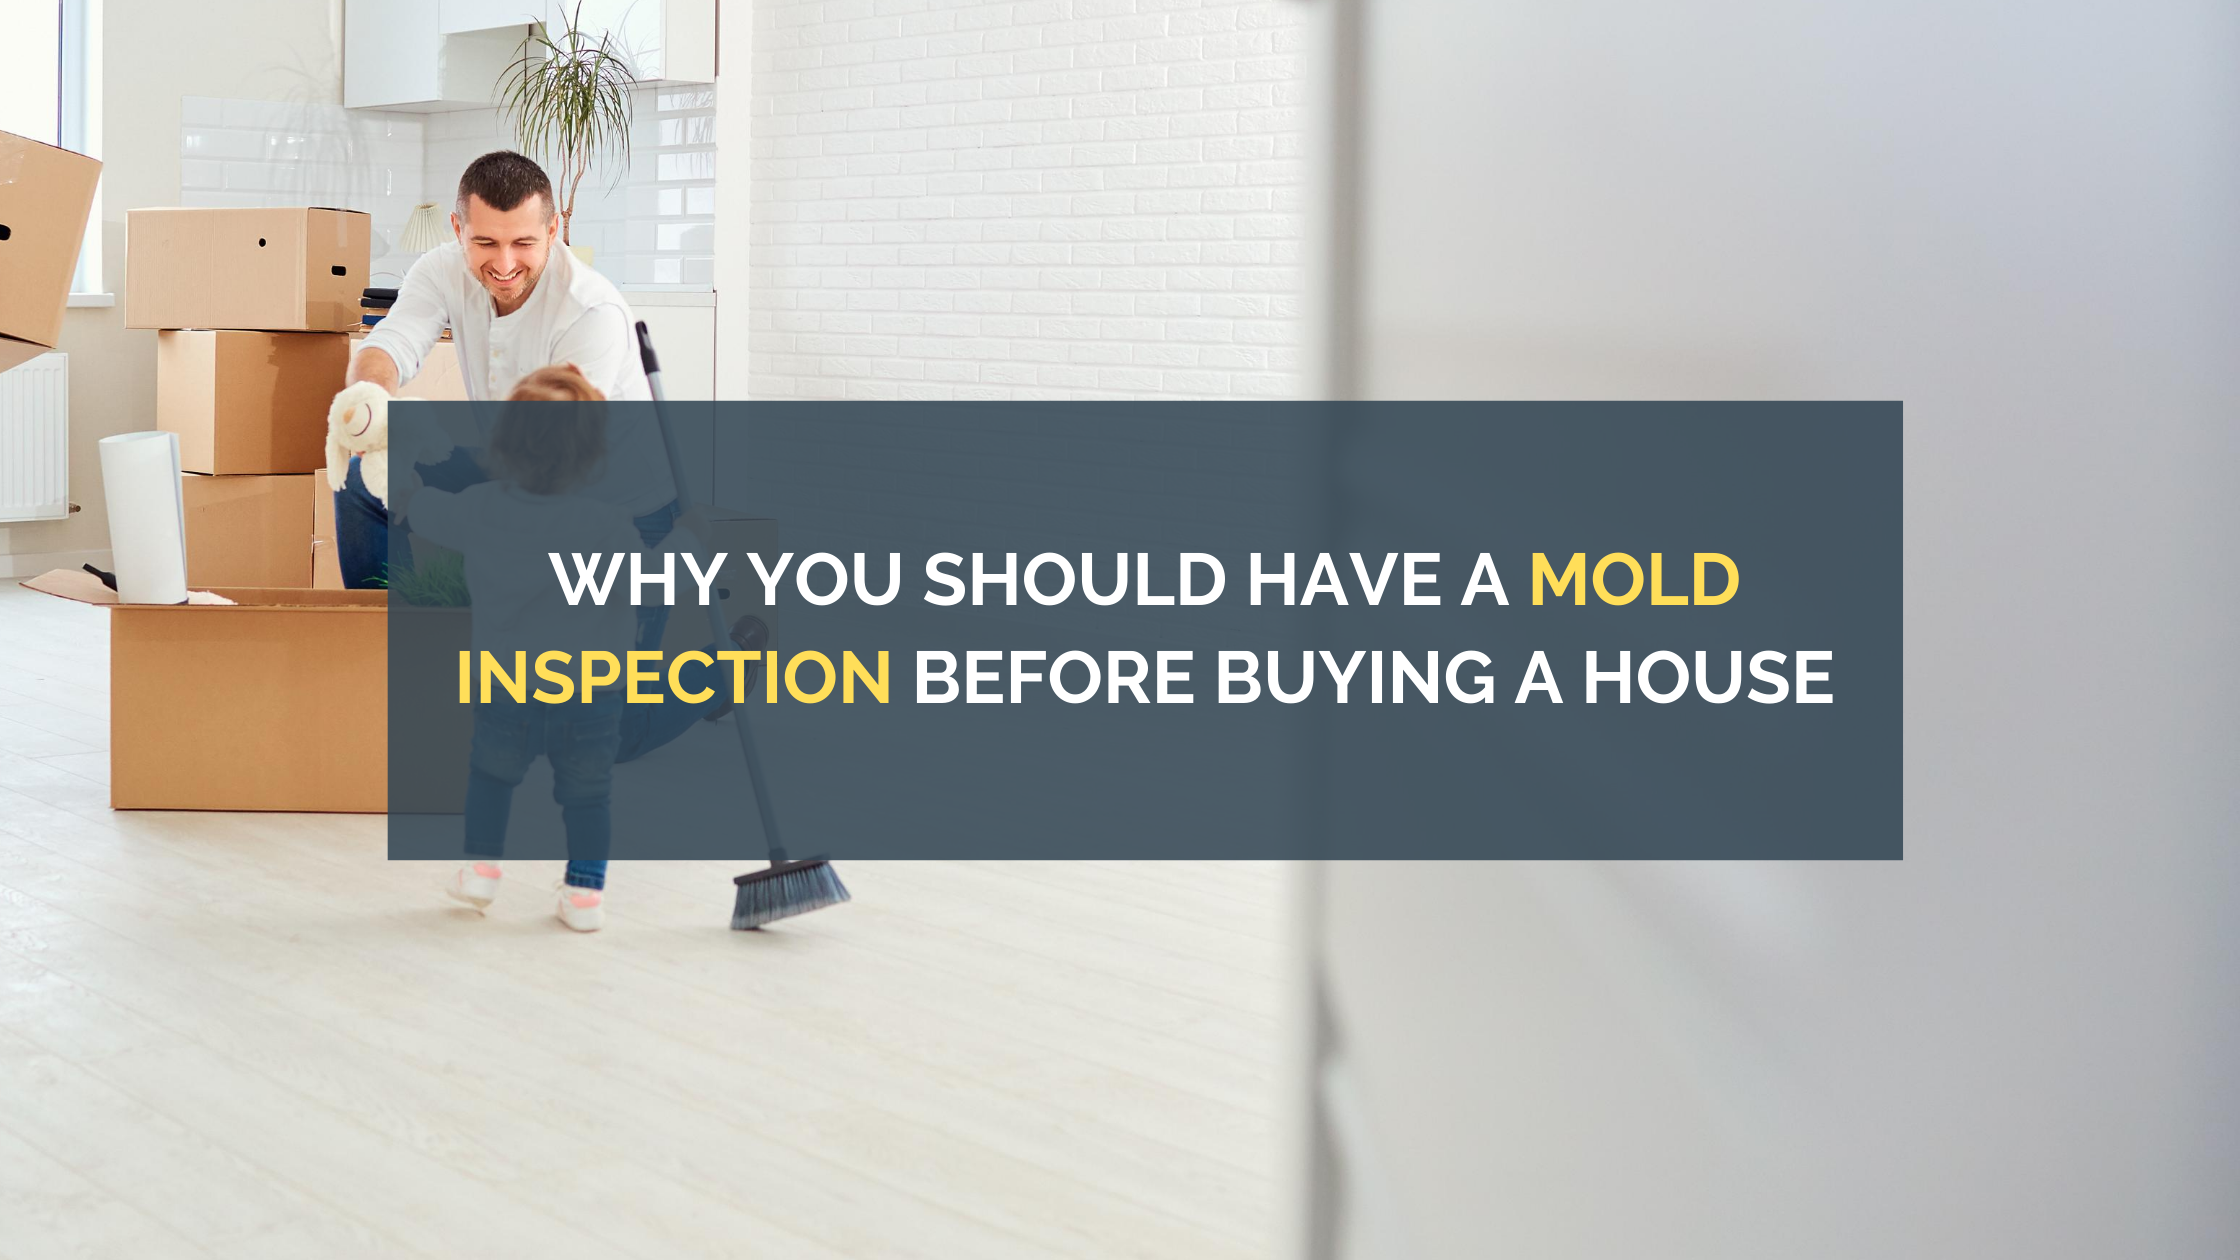 Why You Should Have a Mold Inspection Before Buying a House